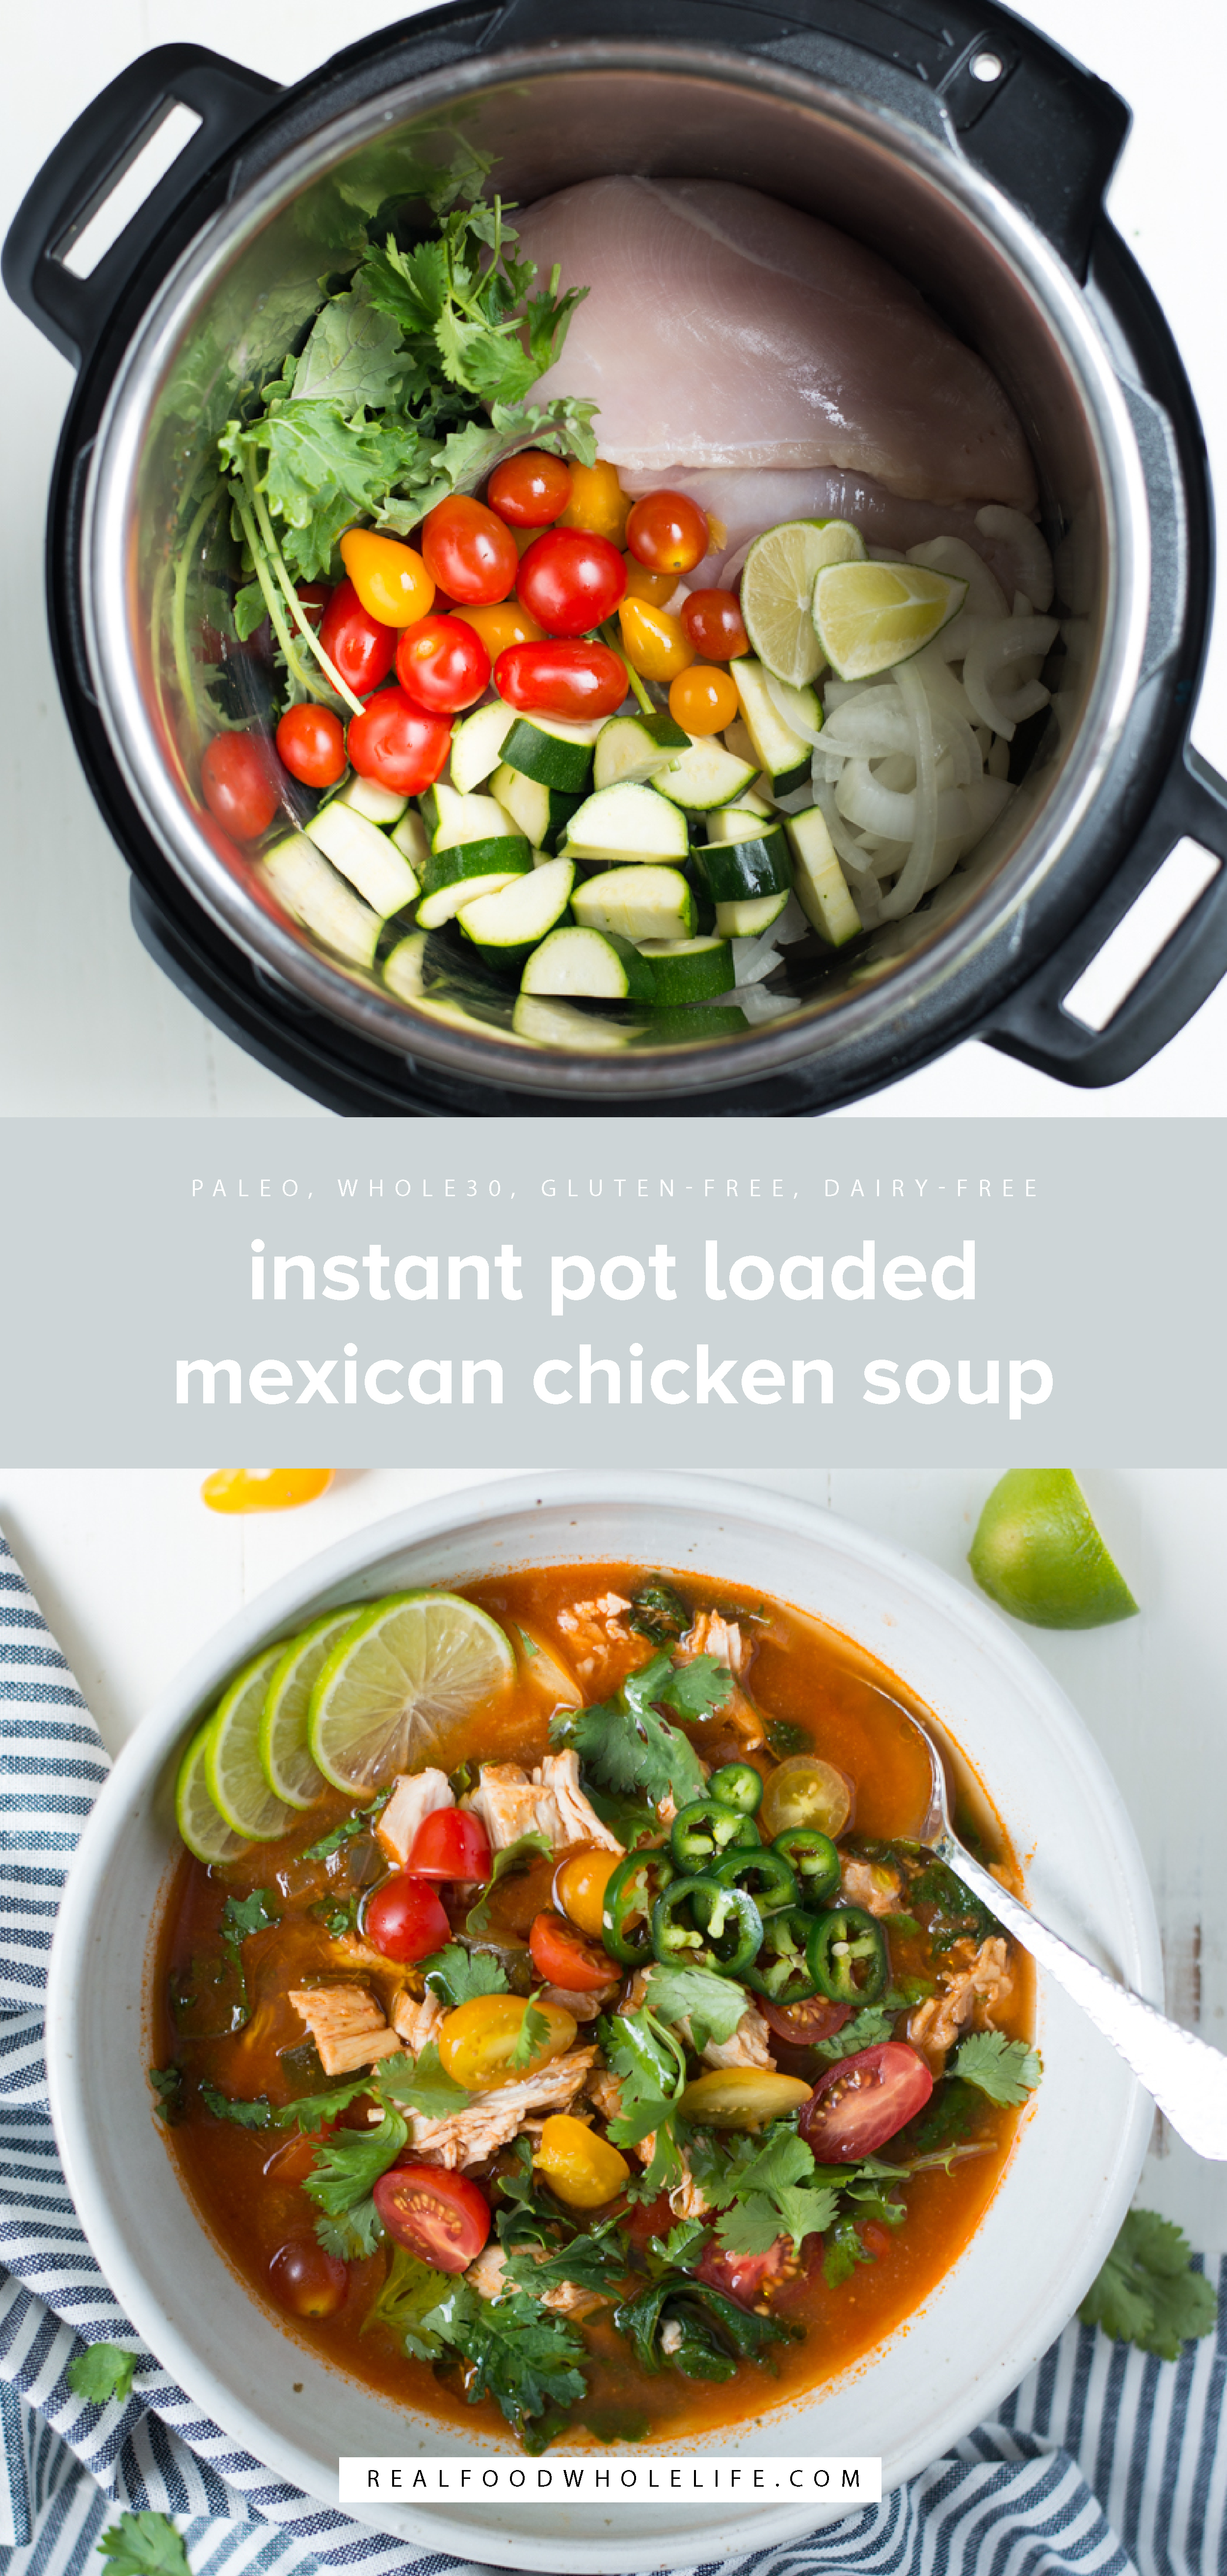 Instant Pot Loaded Mexican Chicken Soup is super fresh and packed with flavor, Instant Pot Loaded Mexican Chicken Soup in a one-pot dinner you'll want to make again and again. A gluten-free, dairy-free, paleo, whole30 recipe.